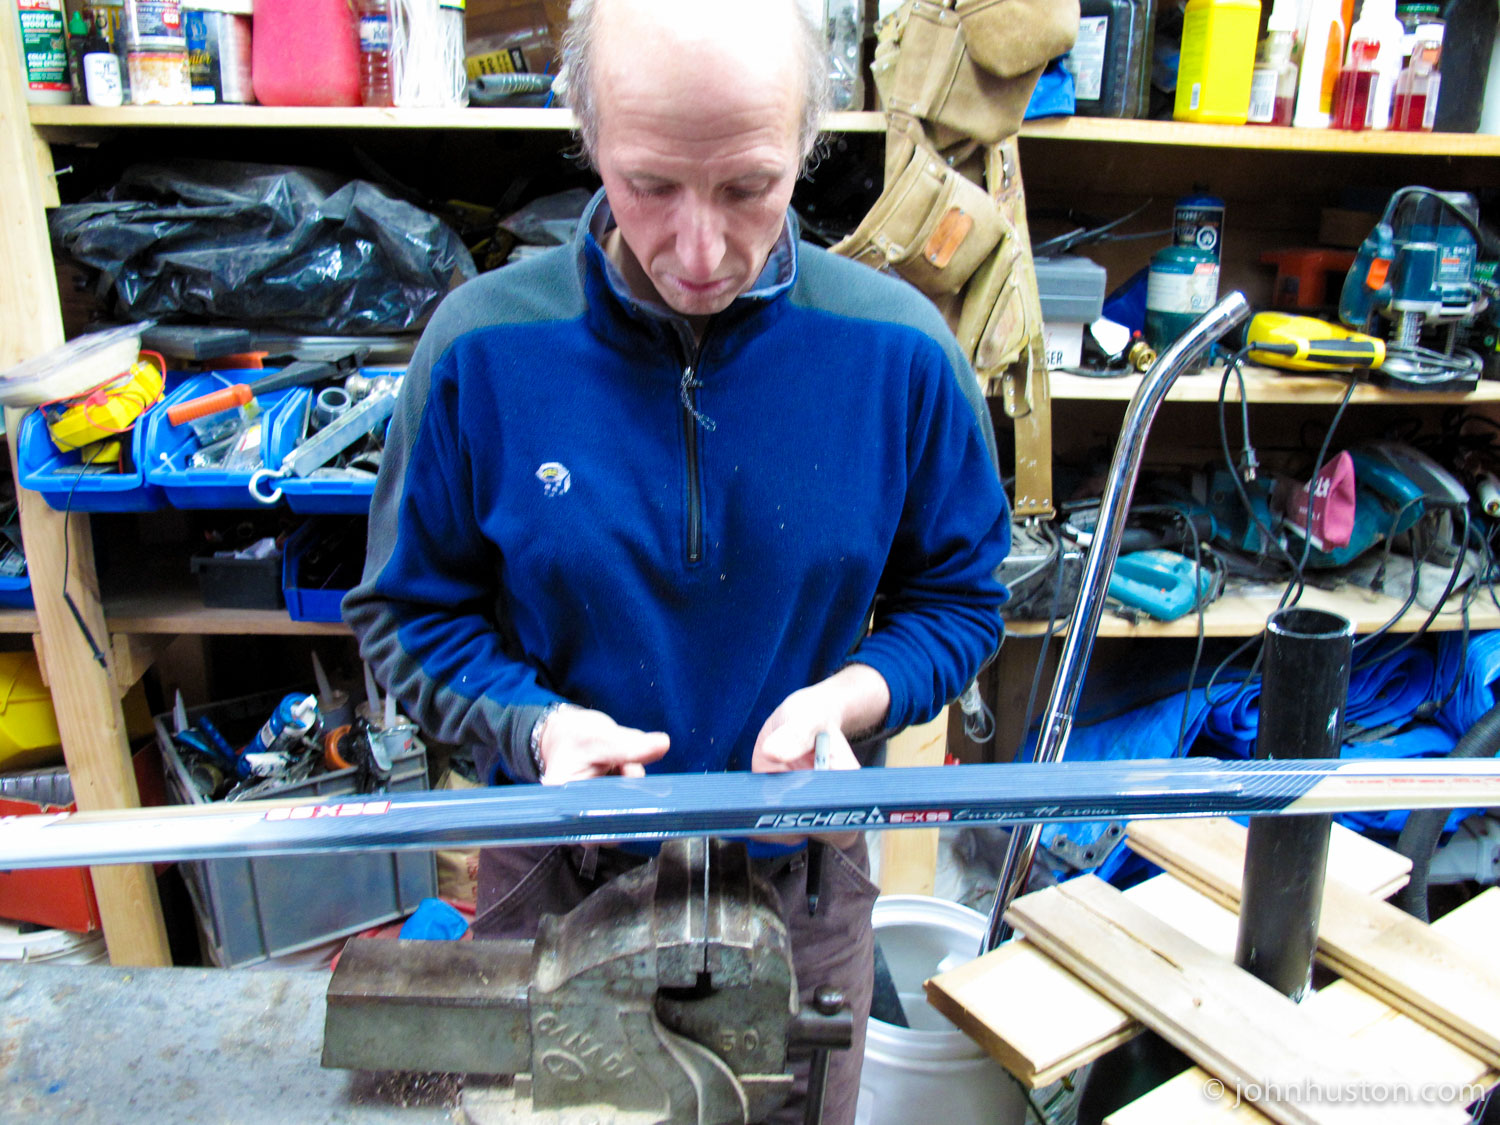 North Pole veteran and recent South Pole ski record setter Richard Weber, works with our skis.